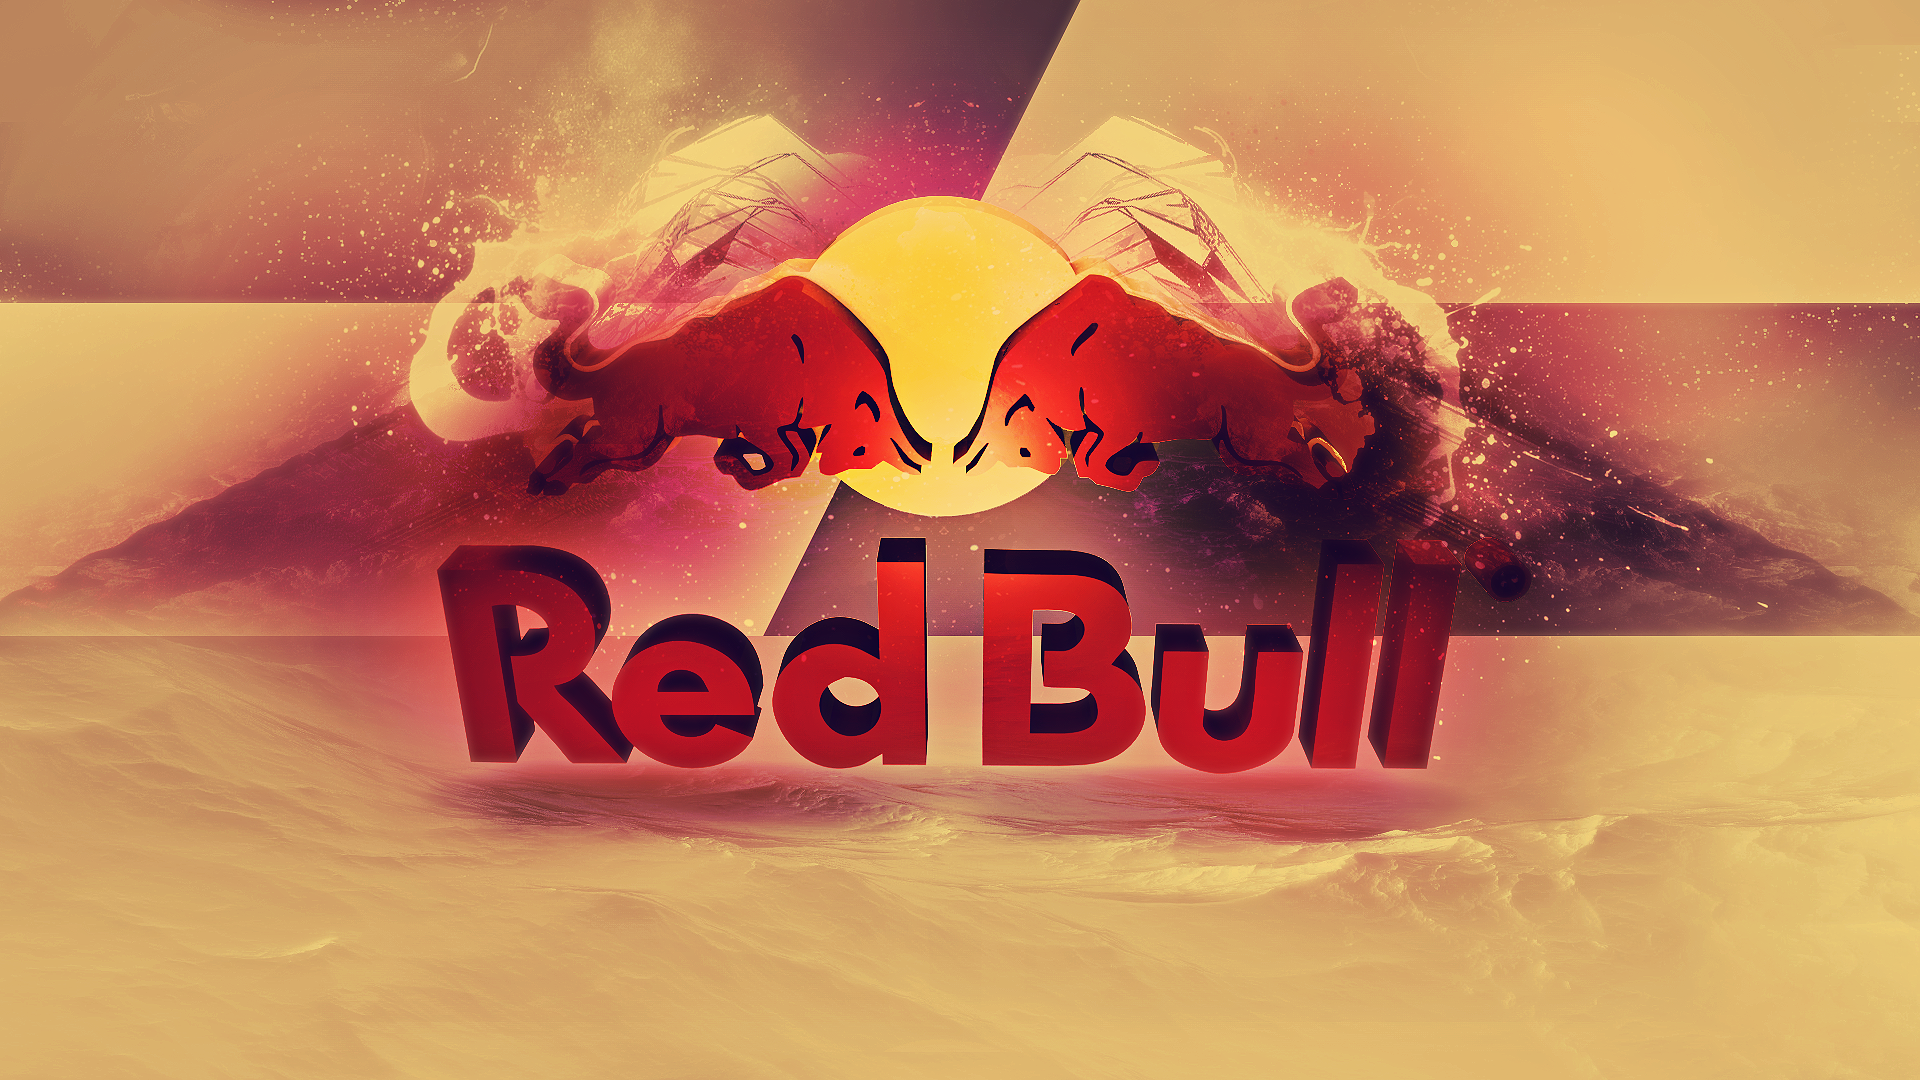 Free Red Bull Wallpaper